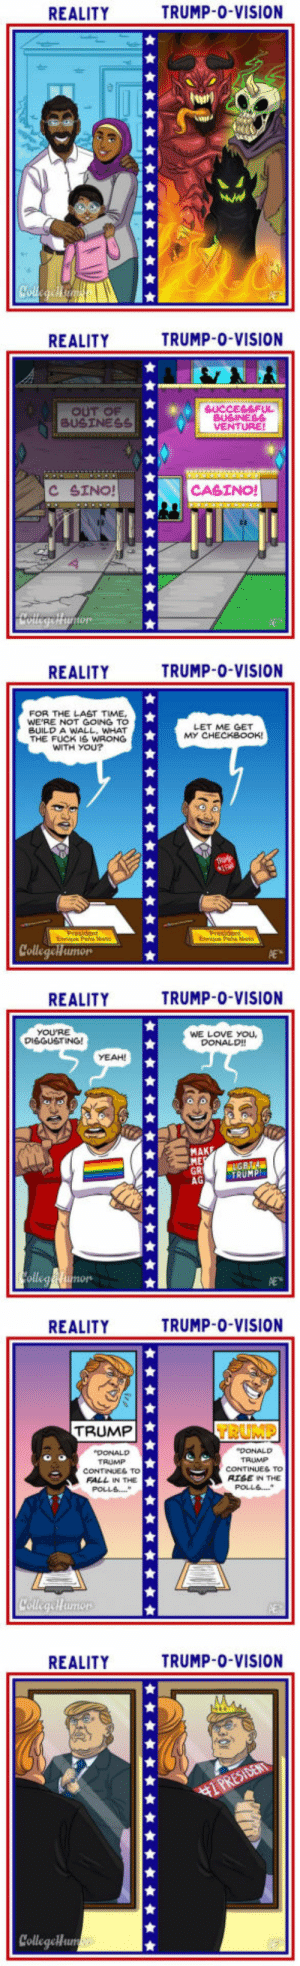 Donald Trump, Fall, and Love: REALITY  TRUMP-0-VISION  REALITY  TRUMP-0-VISION  SUCCESSFUL  BUSINESS  VENTURE  C SINO!  CASINO!  REALITY  TRUMP-0-VISION  FOR THE LAST TIME,  WE'RE NOT GOING TO  BUILD A WALL, WHAT  THE FUCK IS WRON  WITH YOU?  LET ME GET  Collegeh umor  REALITY  TRUMP-0-VISION  YOU'RE  DISGUSTING!  WE LOVE YOU  DONALD  YEAH!  MAKE  ME  TRUMP  AG  nors  REALITYTRUMP O-VISION  TRUMP  DONALD  TAUMP  CONTINUES TO  FALL IN THE  RISE N THE  REALITY  TRUMP-0-VISION  CollegeHun What The World Looks Like To Donald Trump (Illustrated by Annie Erskine)